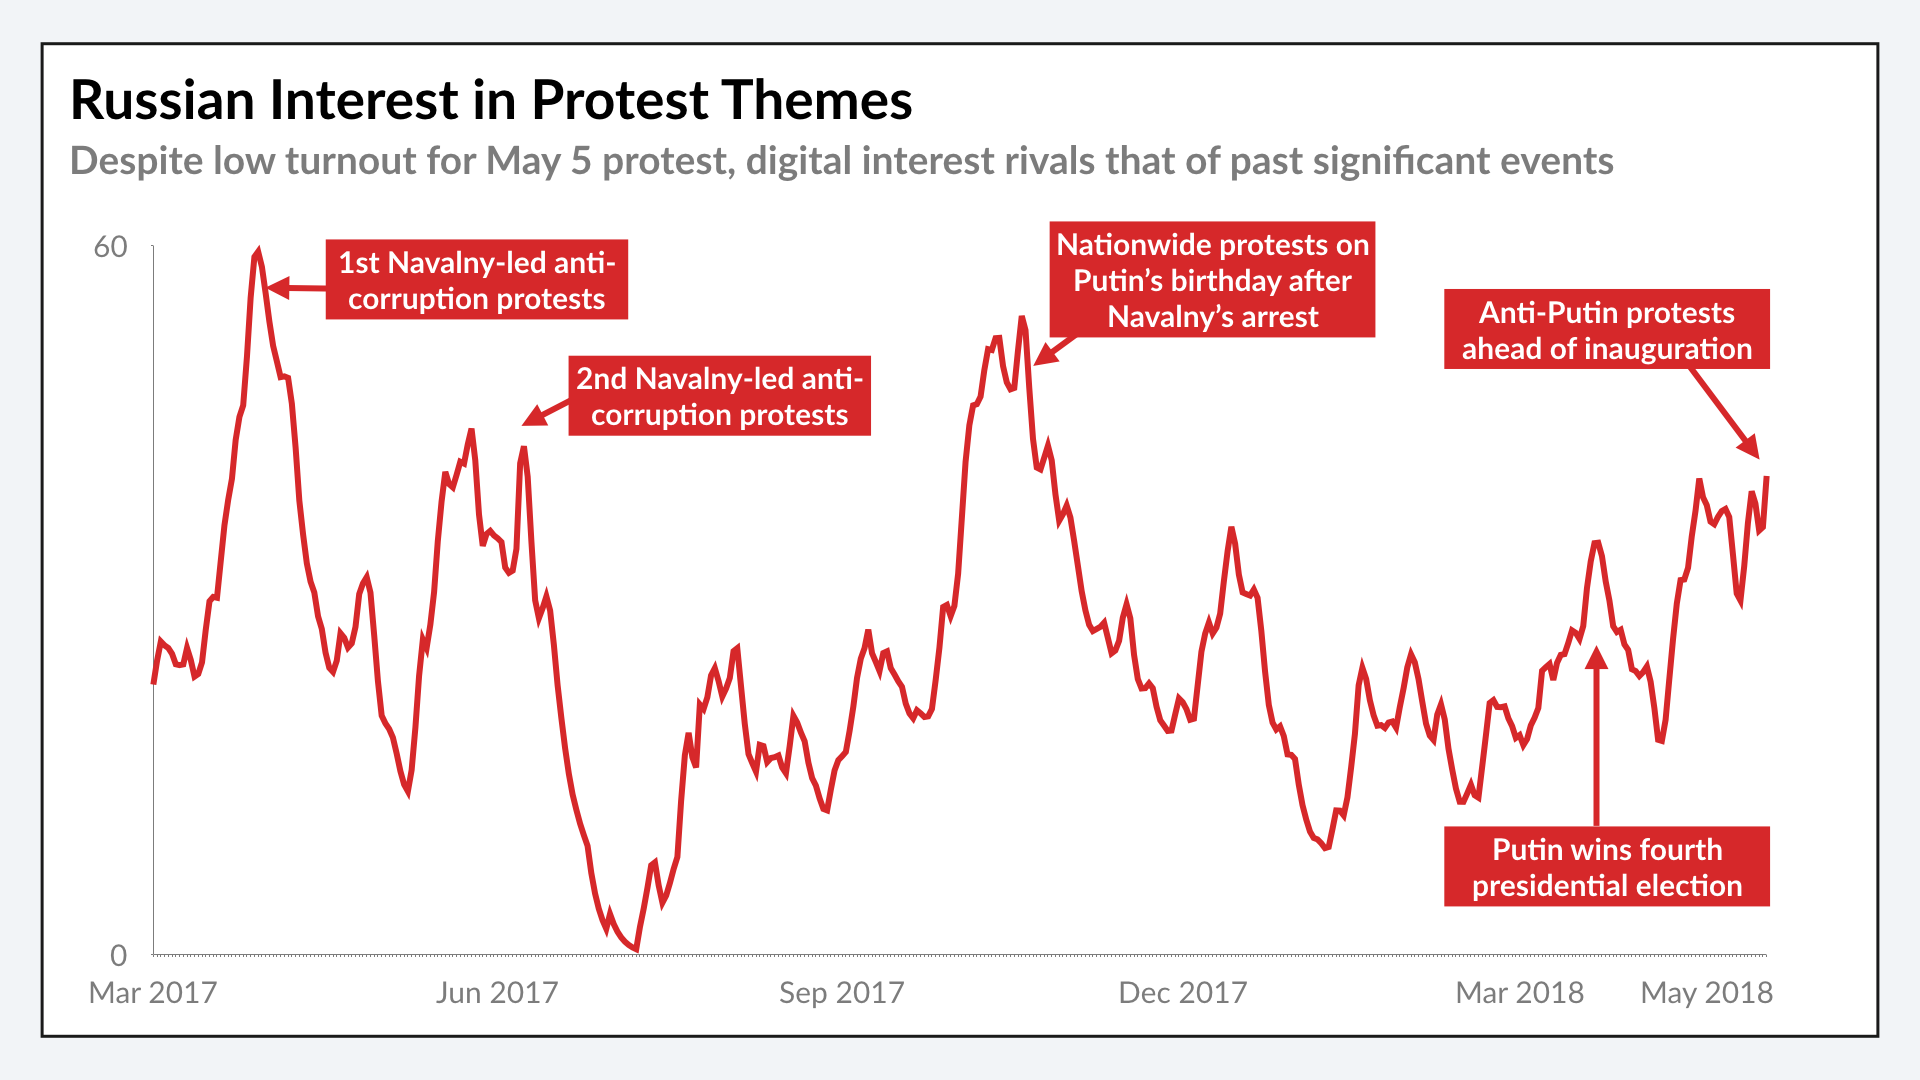 Interest in Russian Protest Themes